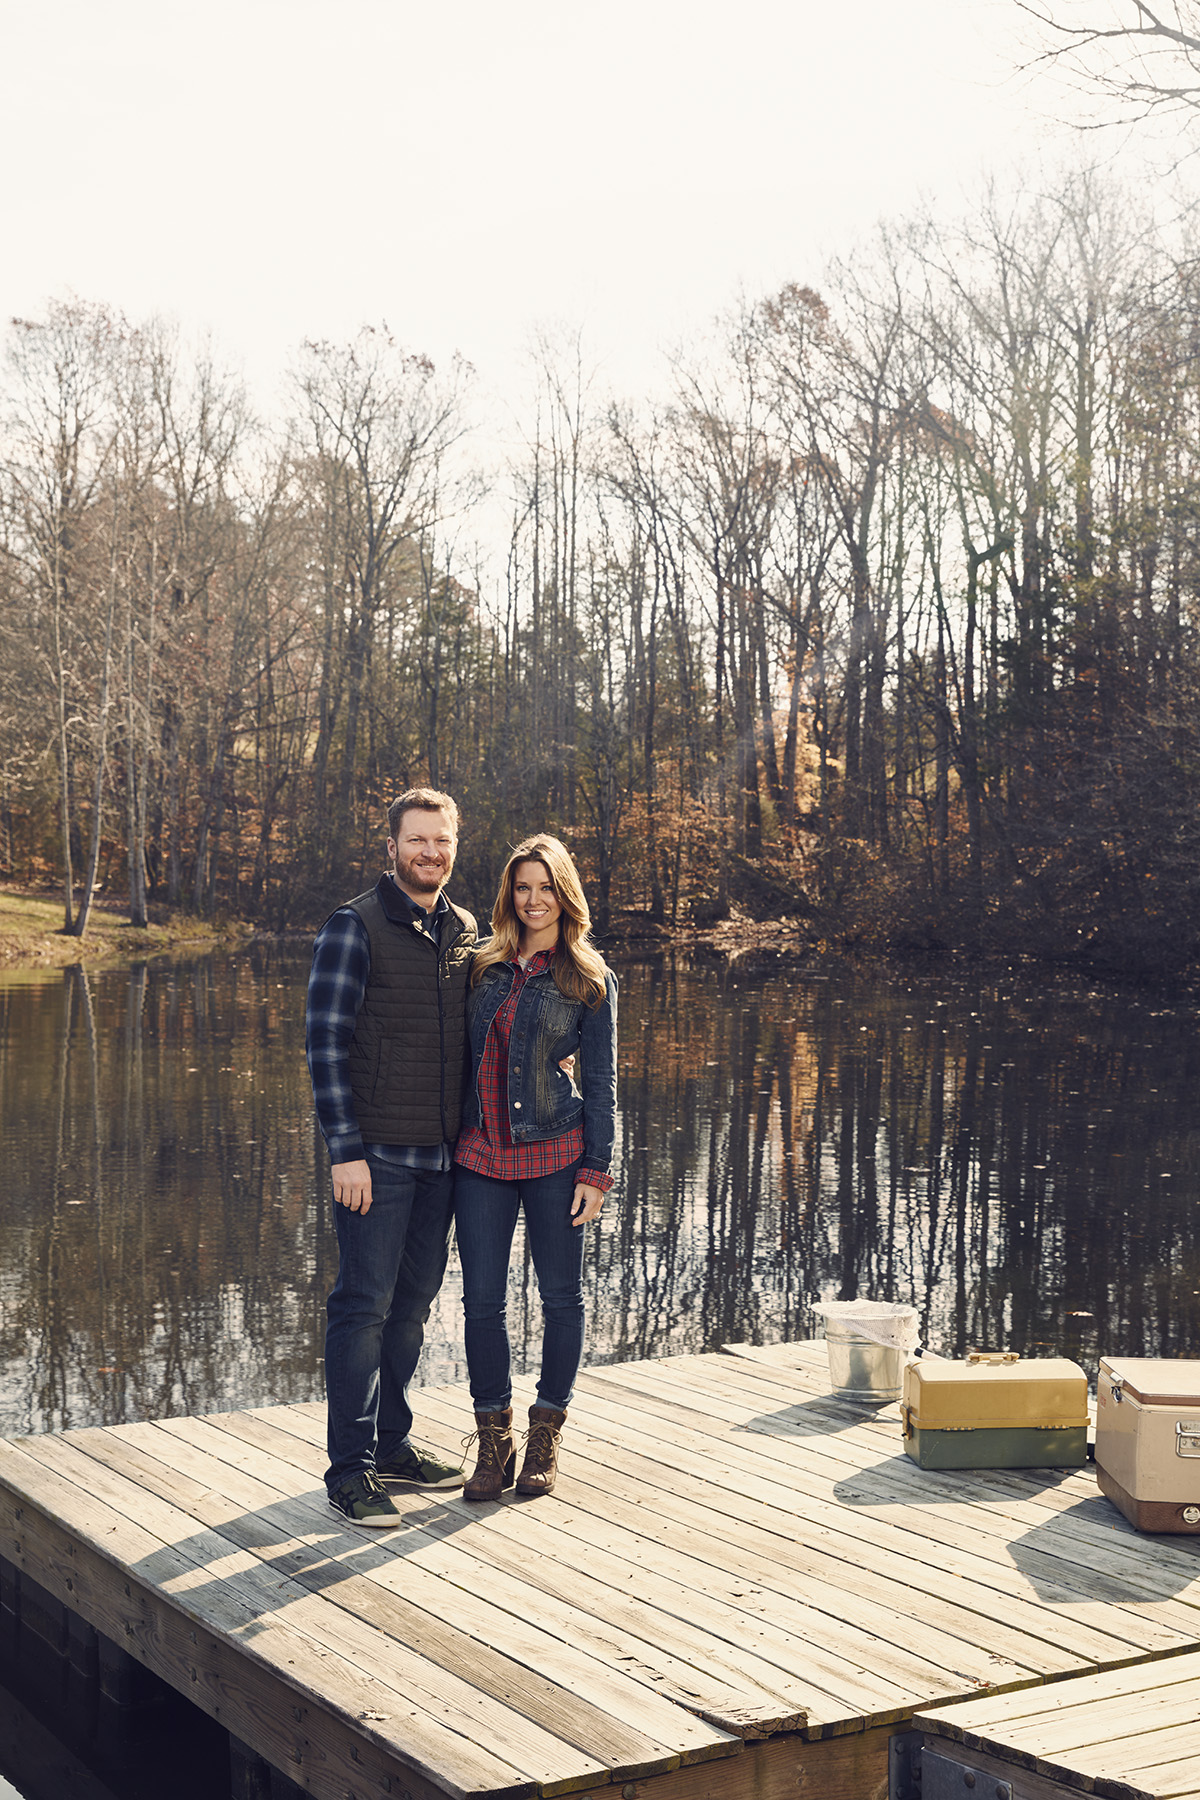 Get ready for dale earnhardt jr s new home renovation for Amy ruth s home style southern cuisine